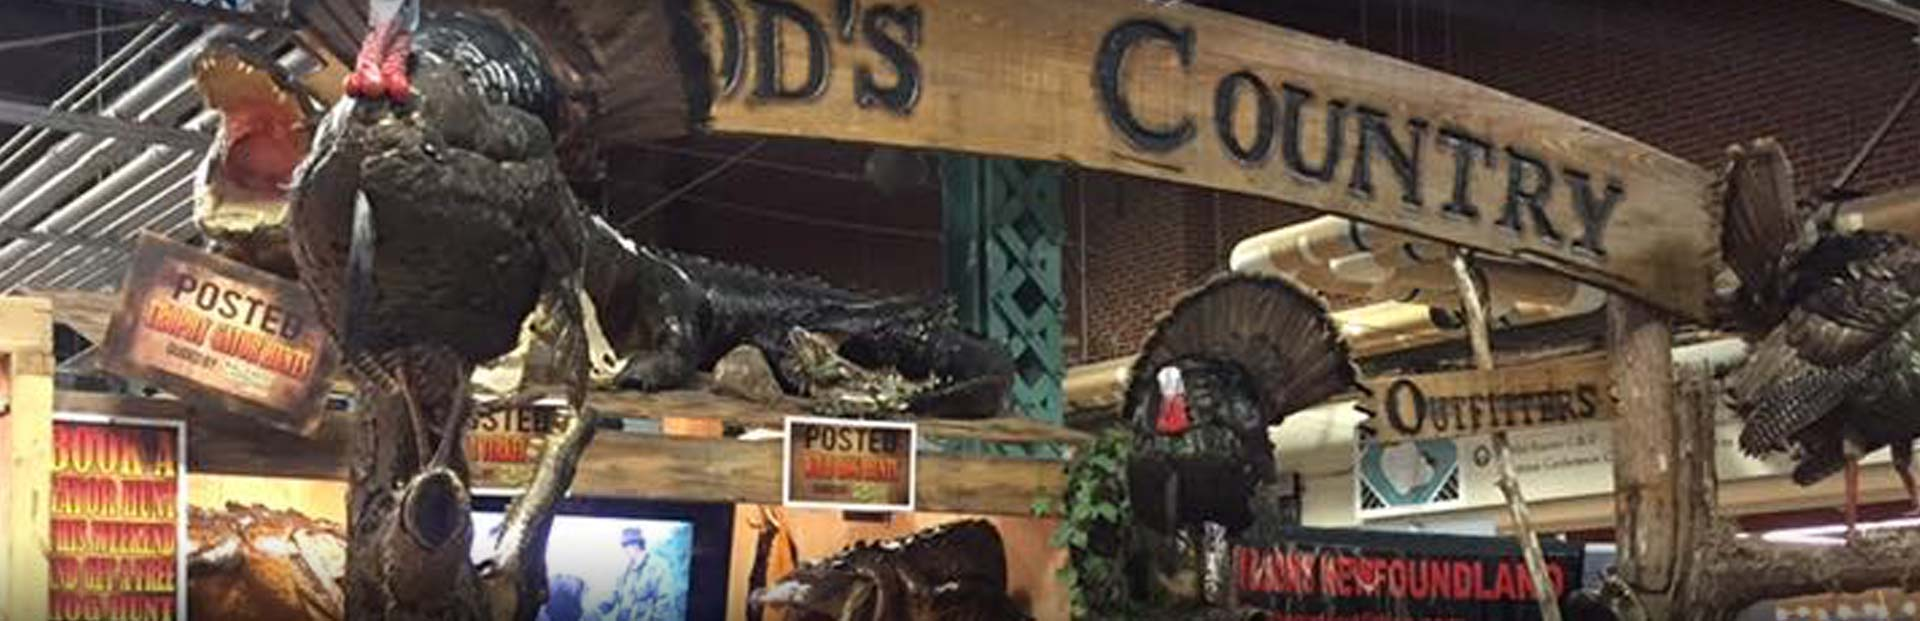 Contact God's Country Outfitters